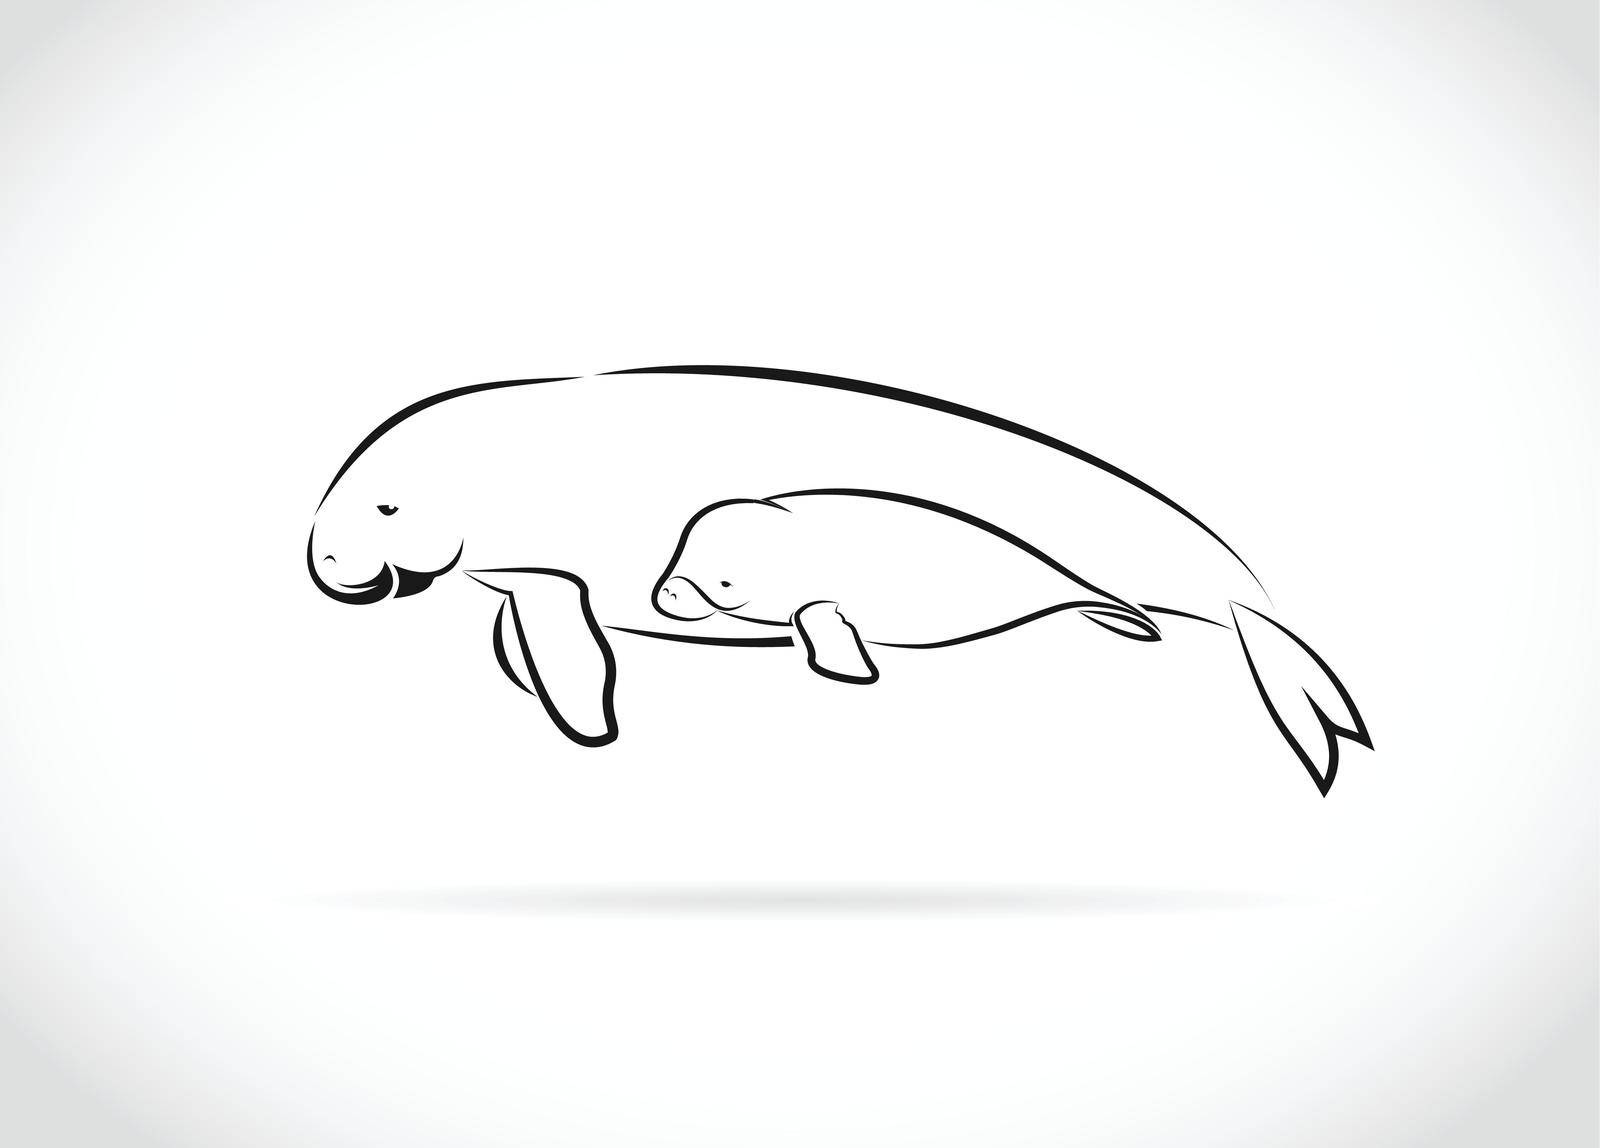 Vector of mother dugong and baby dugong design on white background. Easy editable layered vector illustration. Wild Animals.